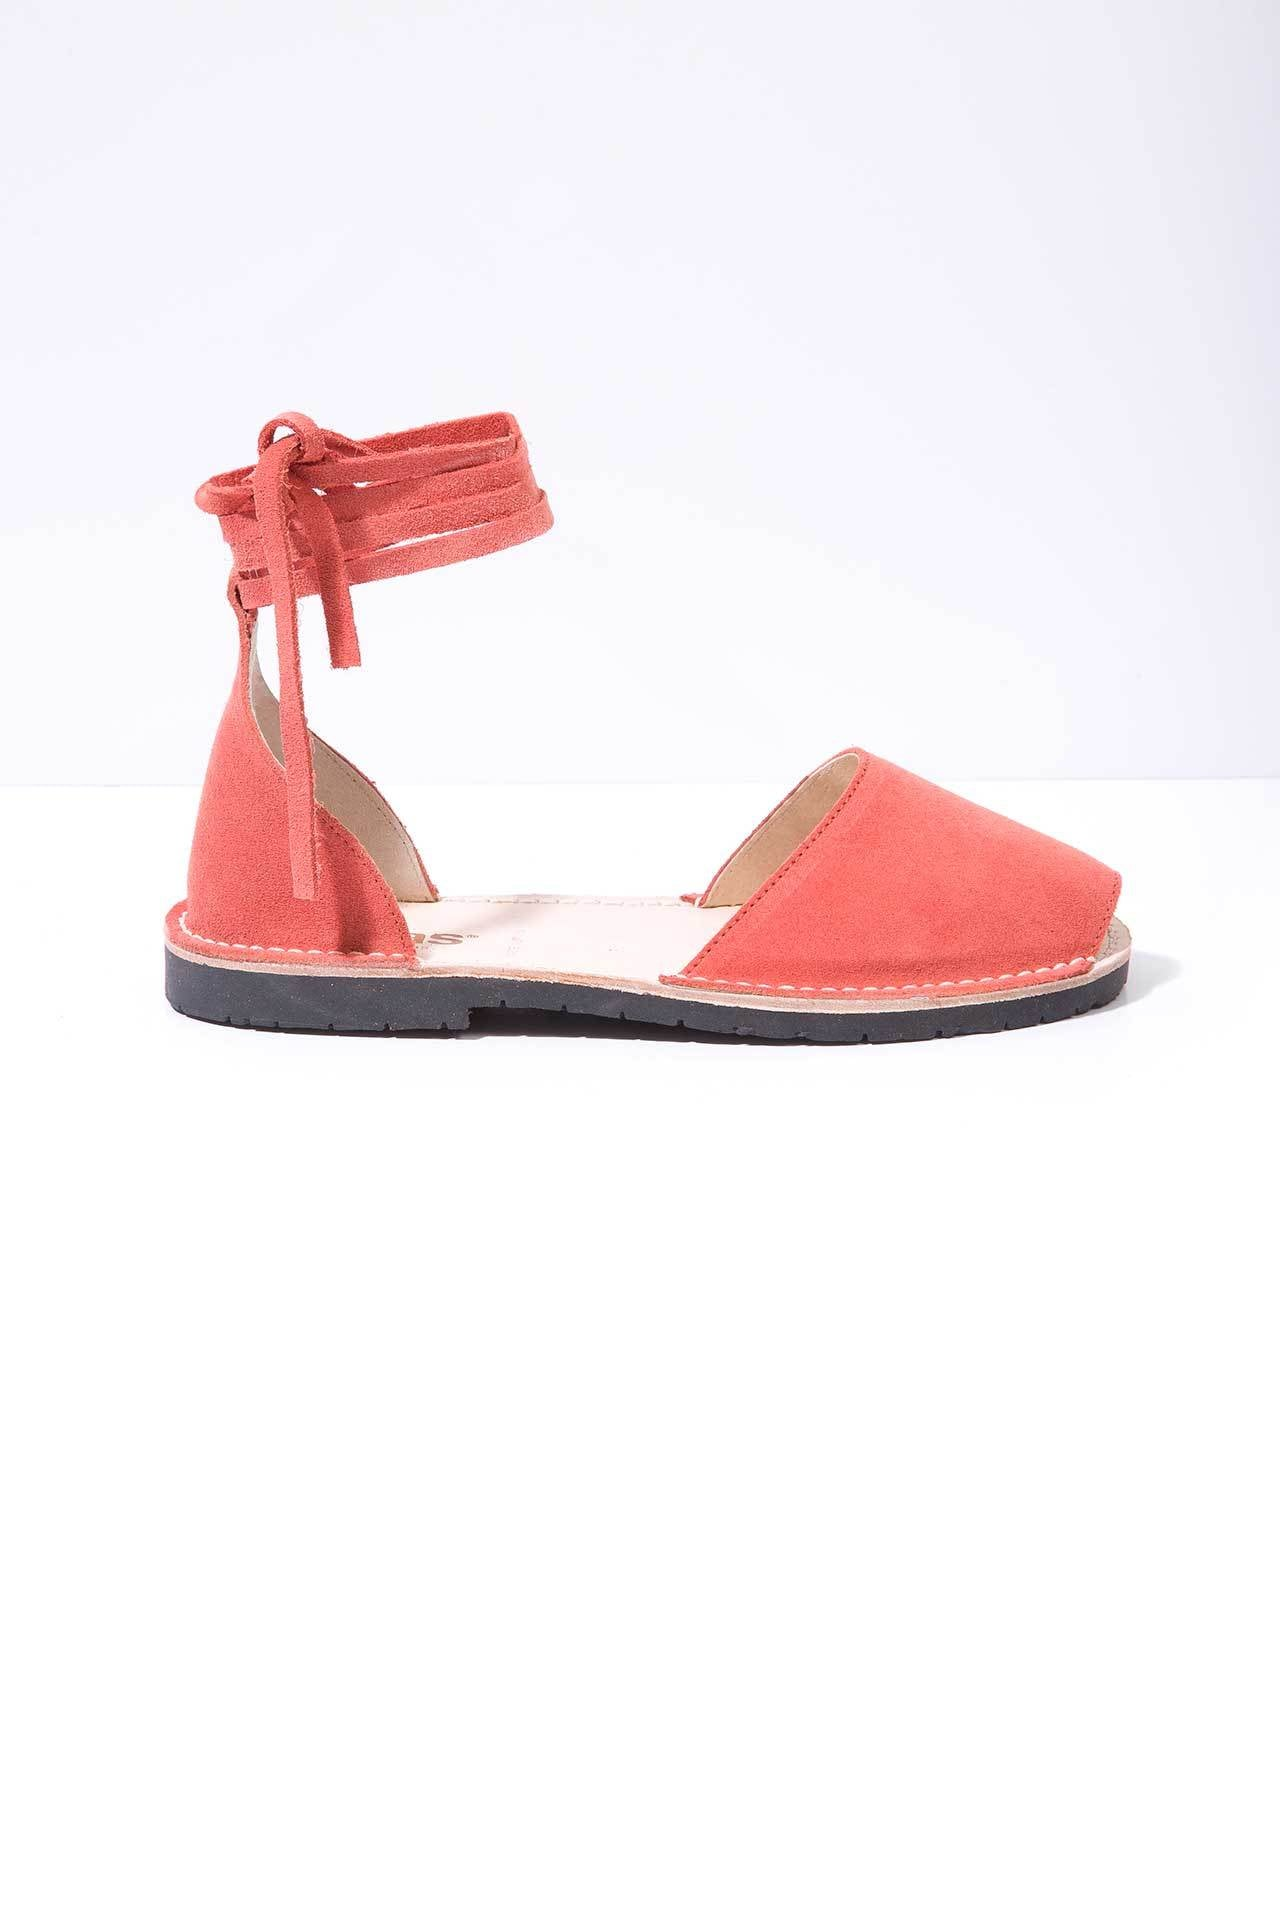 Escarlata - Suede Ankle Tie sandals